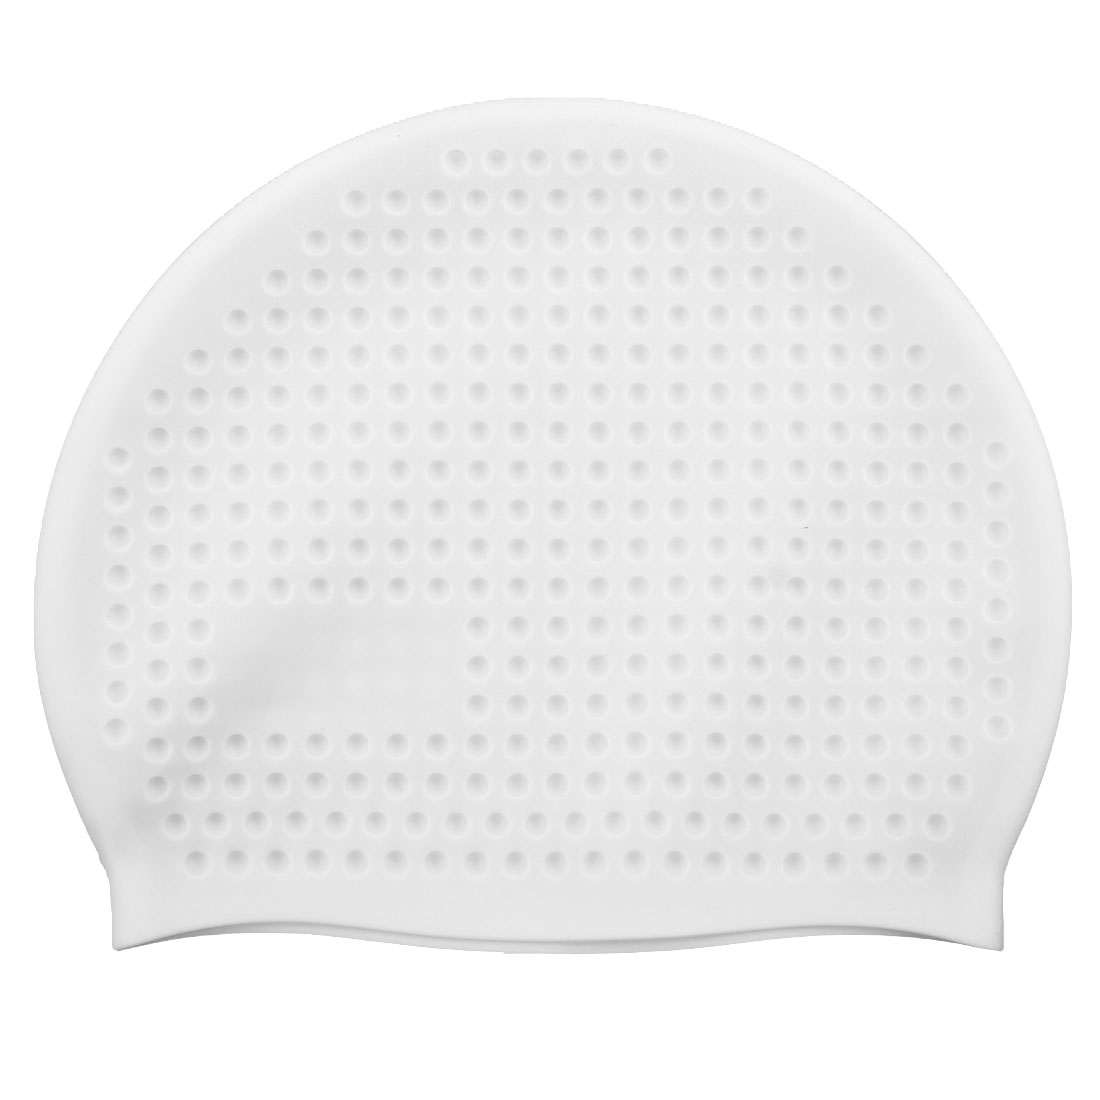 Adult Silicone Dome Shaped Water Resistant Elastic Swimming Cap Portable Bathing Hat White